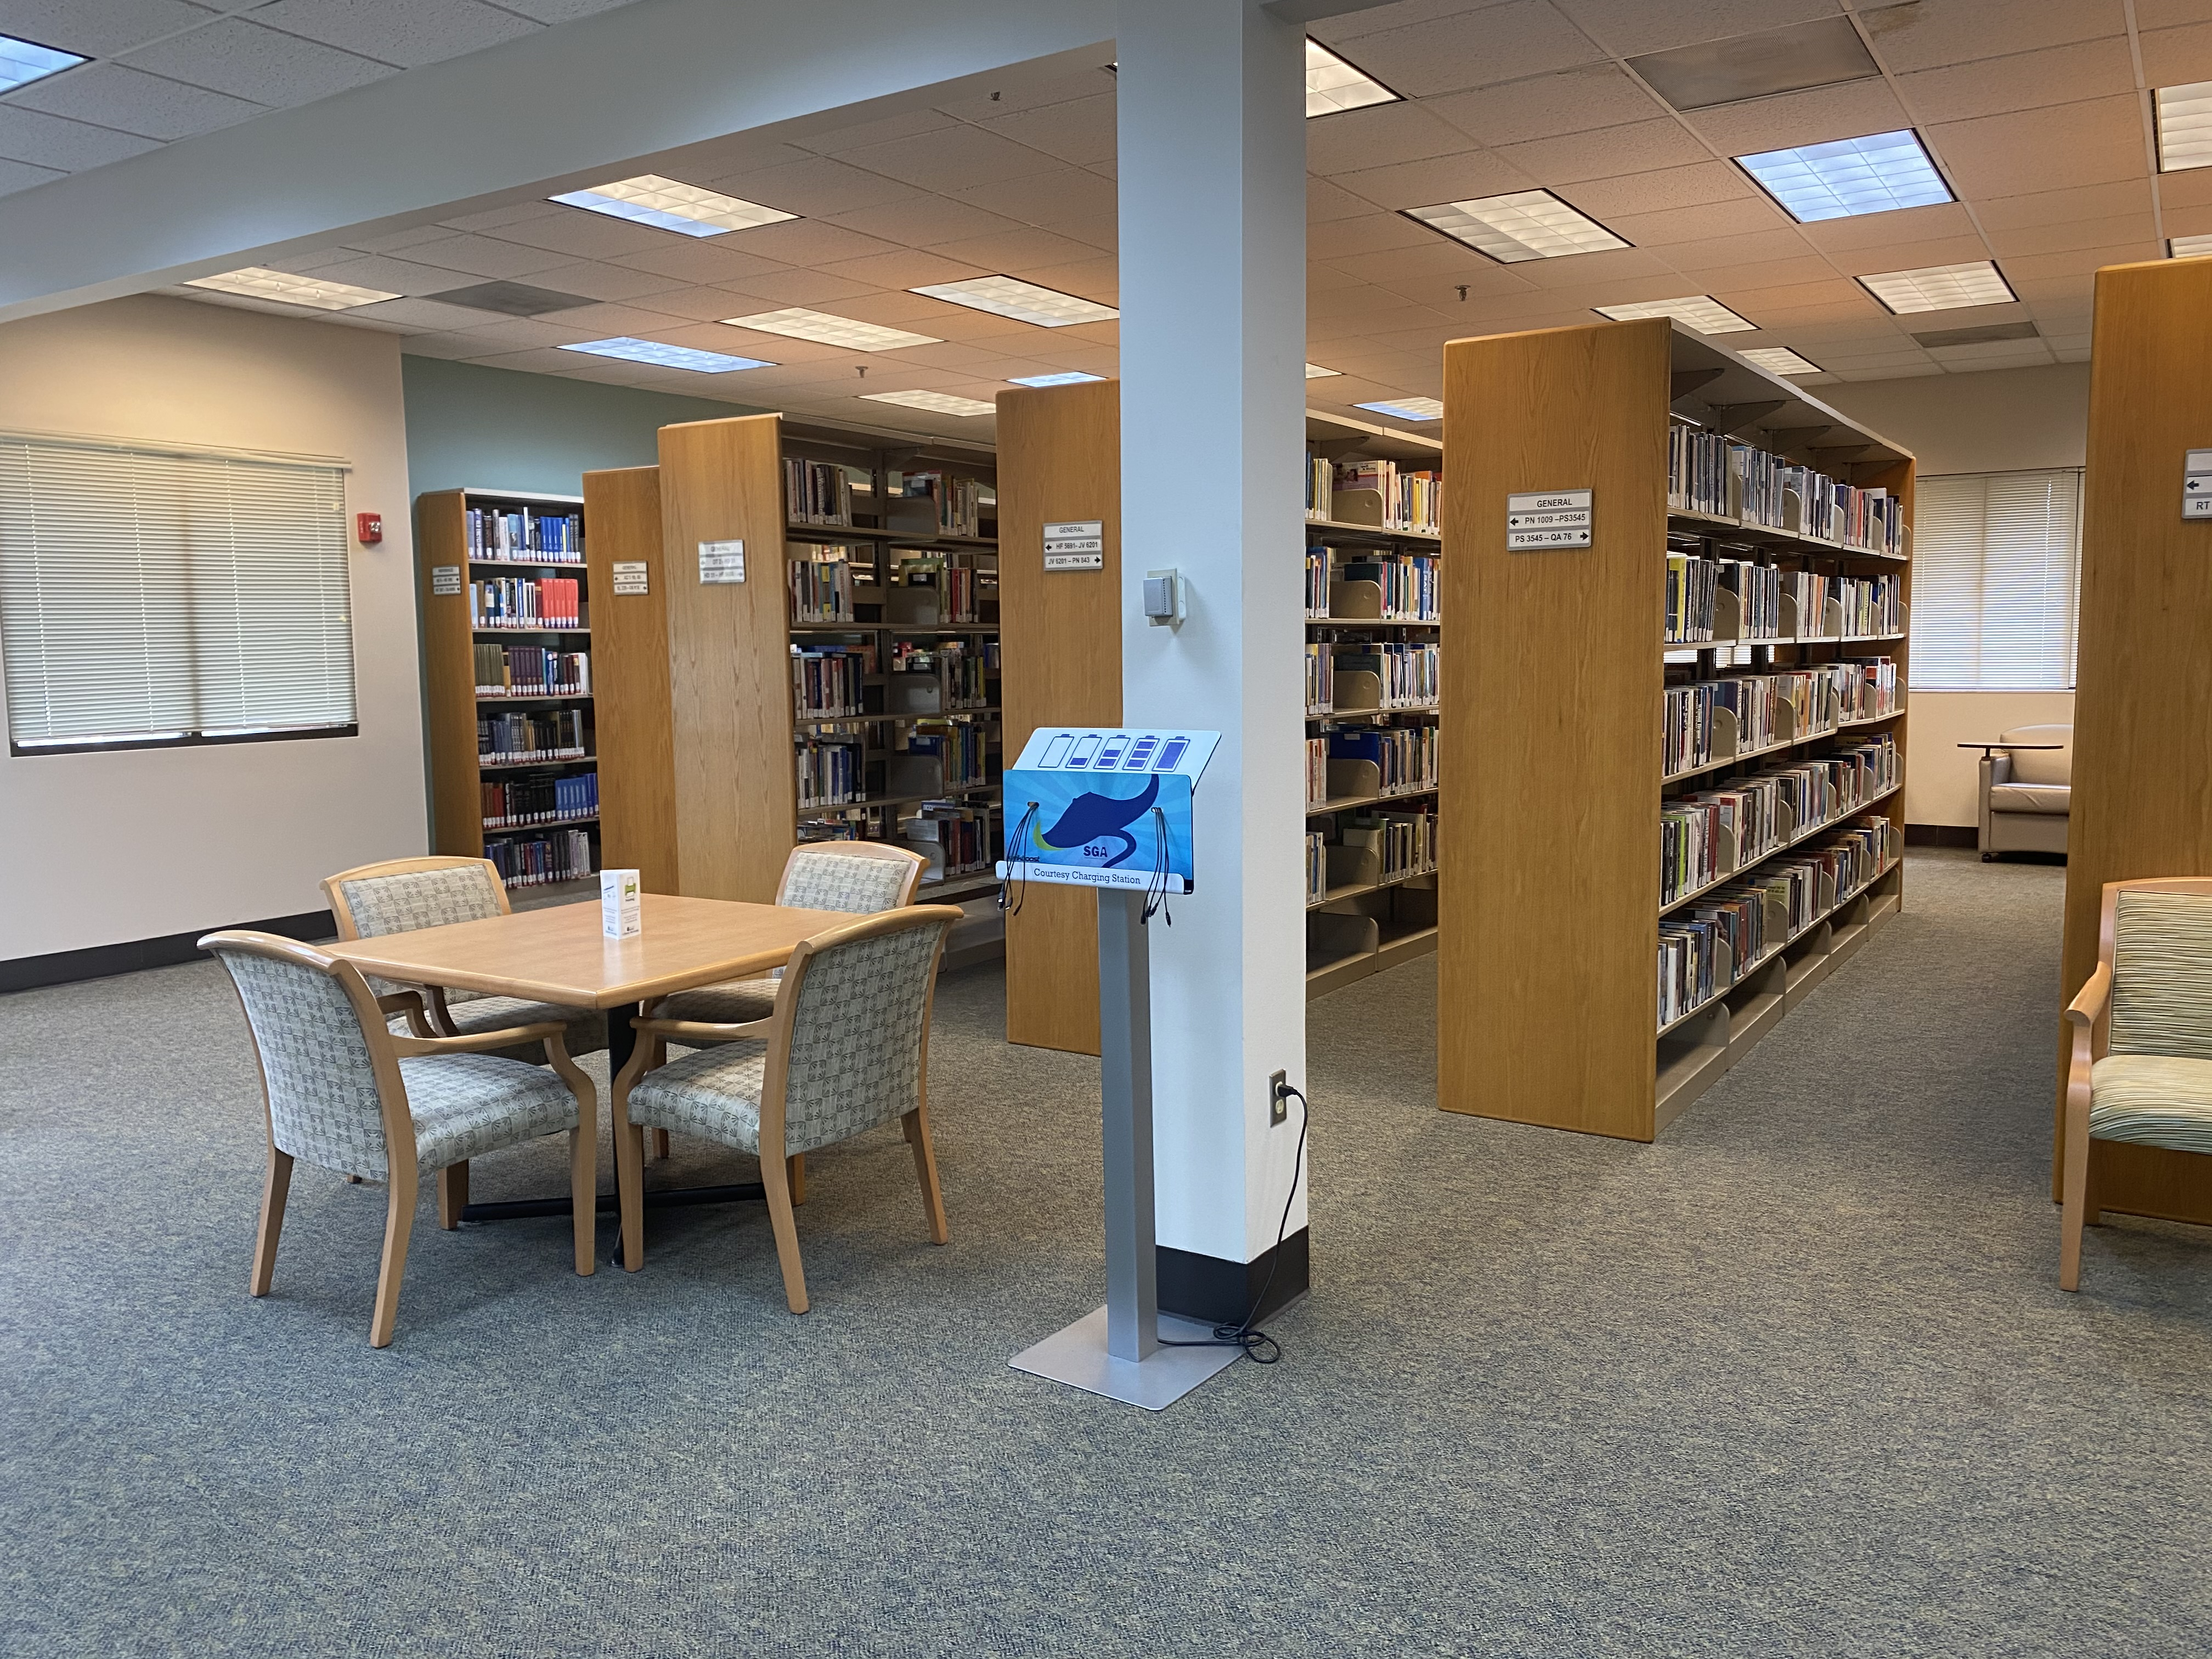 Jesup Library Book Stacks with smart device charging station